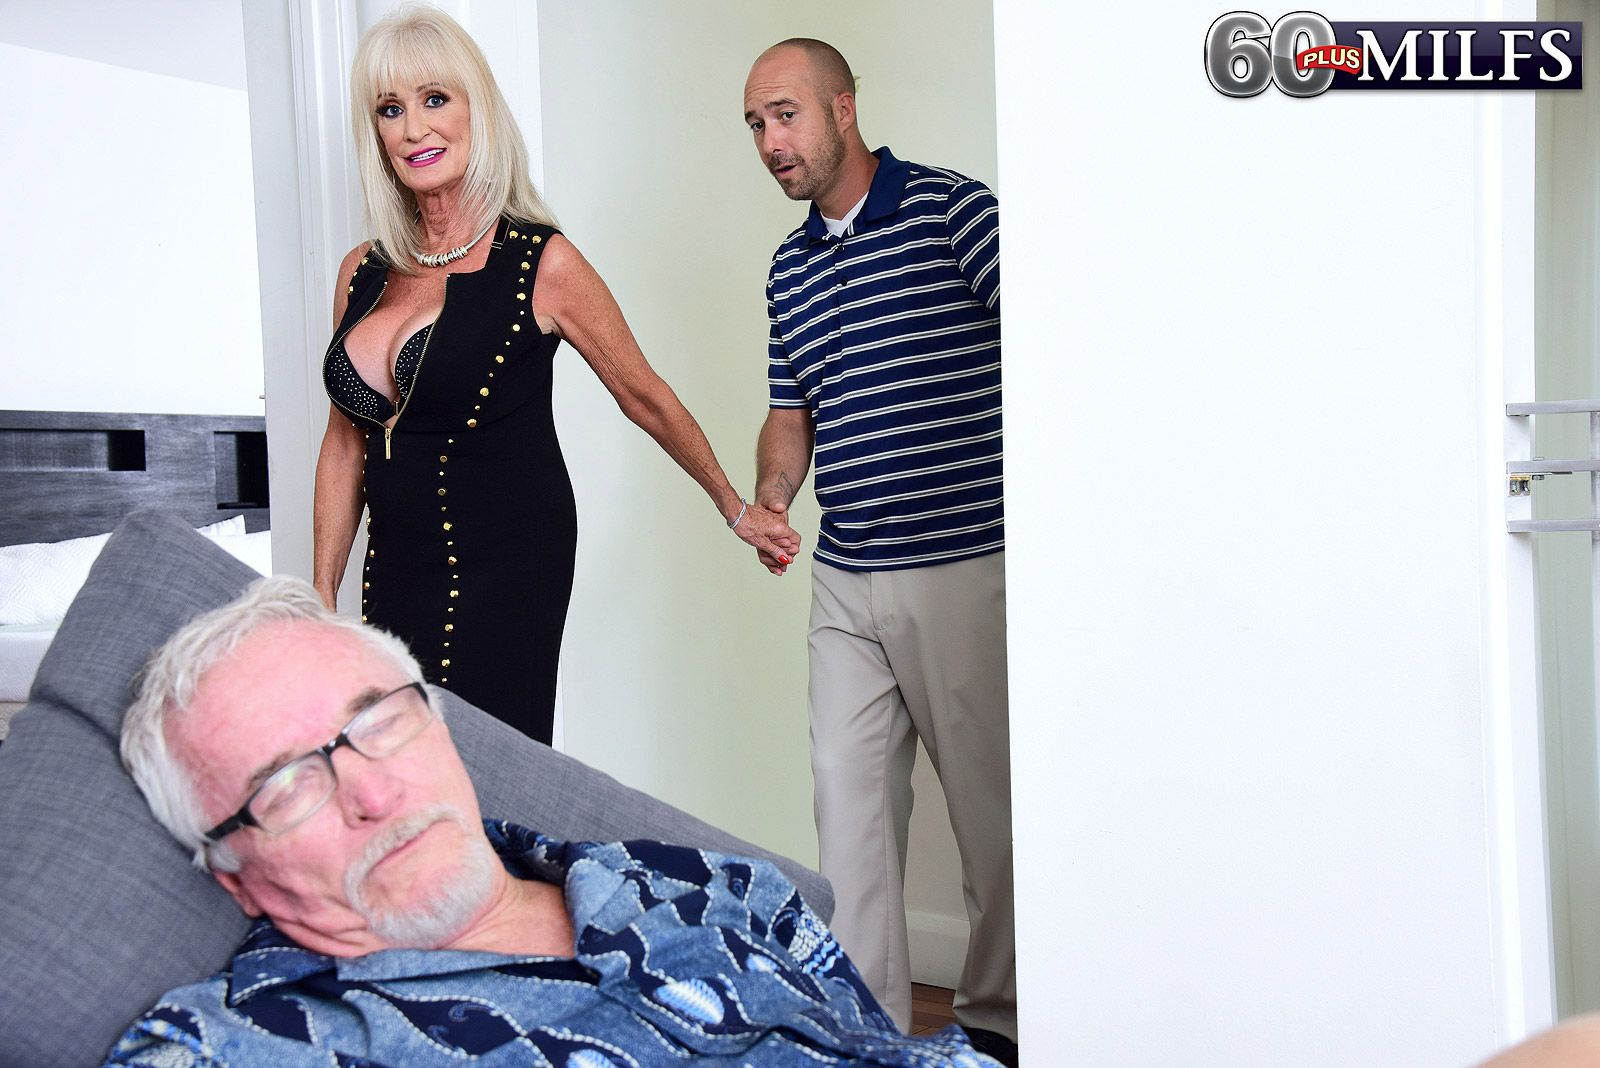 Hot 60 plus granny Leah L'Amour fucks her toy boy behind her husband's back